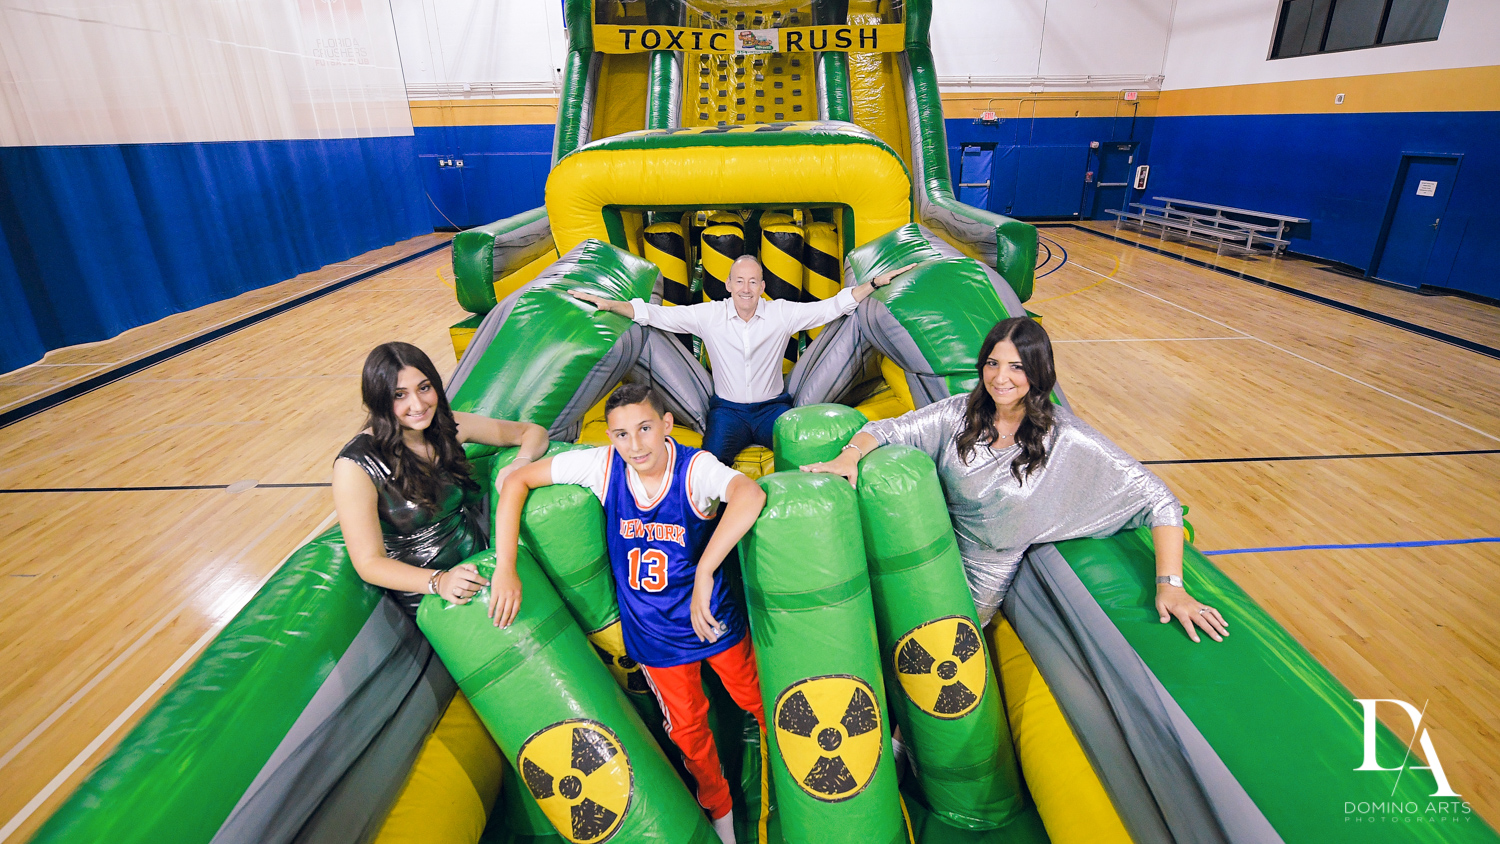 best party inflatables at Sports Theme Bar Mitzvah at DS Sports Plex by Domino Arts Photography